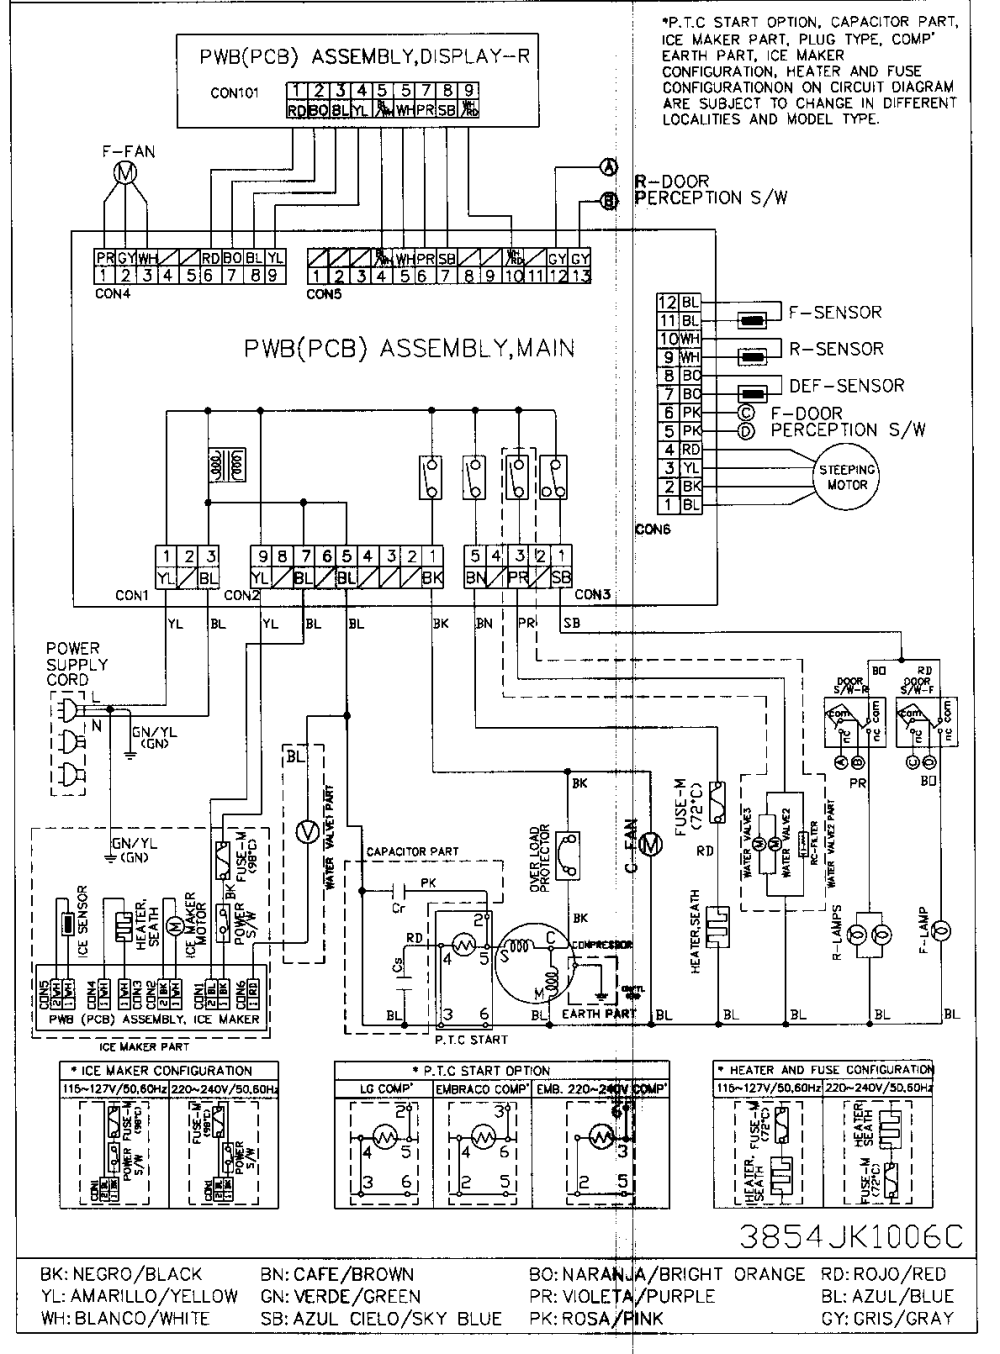 medium resolution of appliance wiring diagram components wiring diagram appliance wiring diagram components